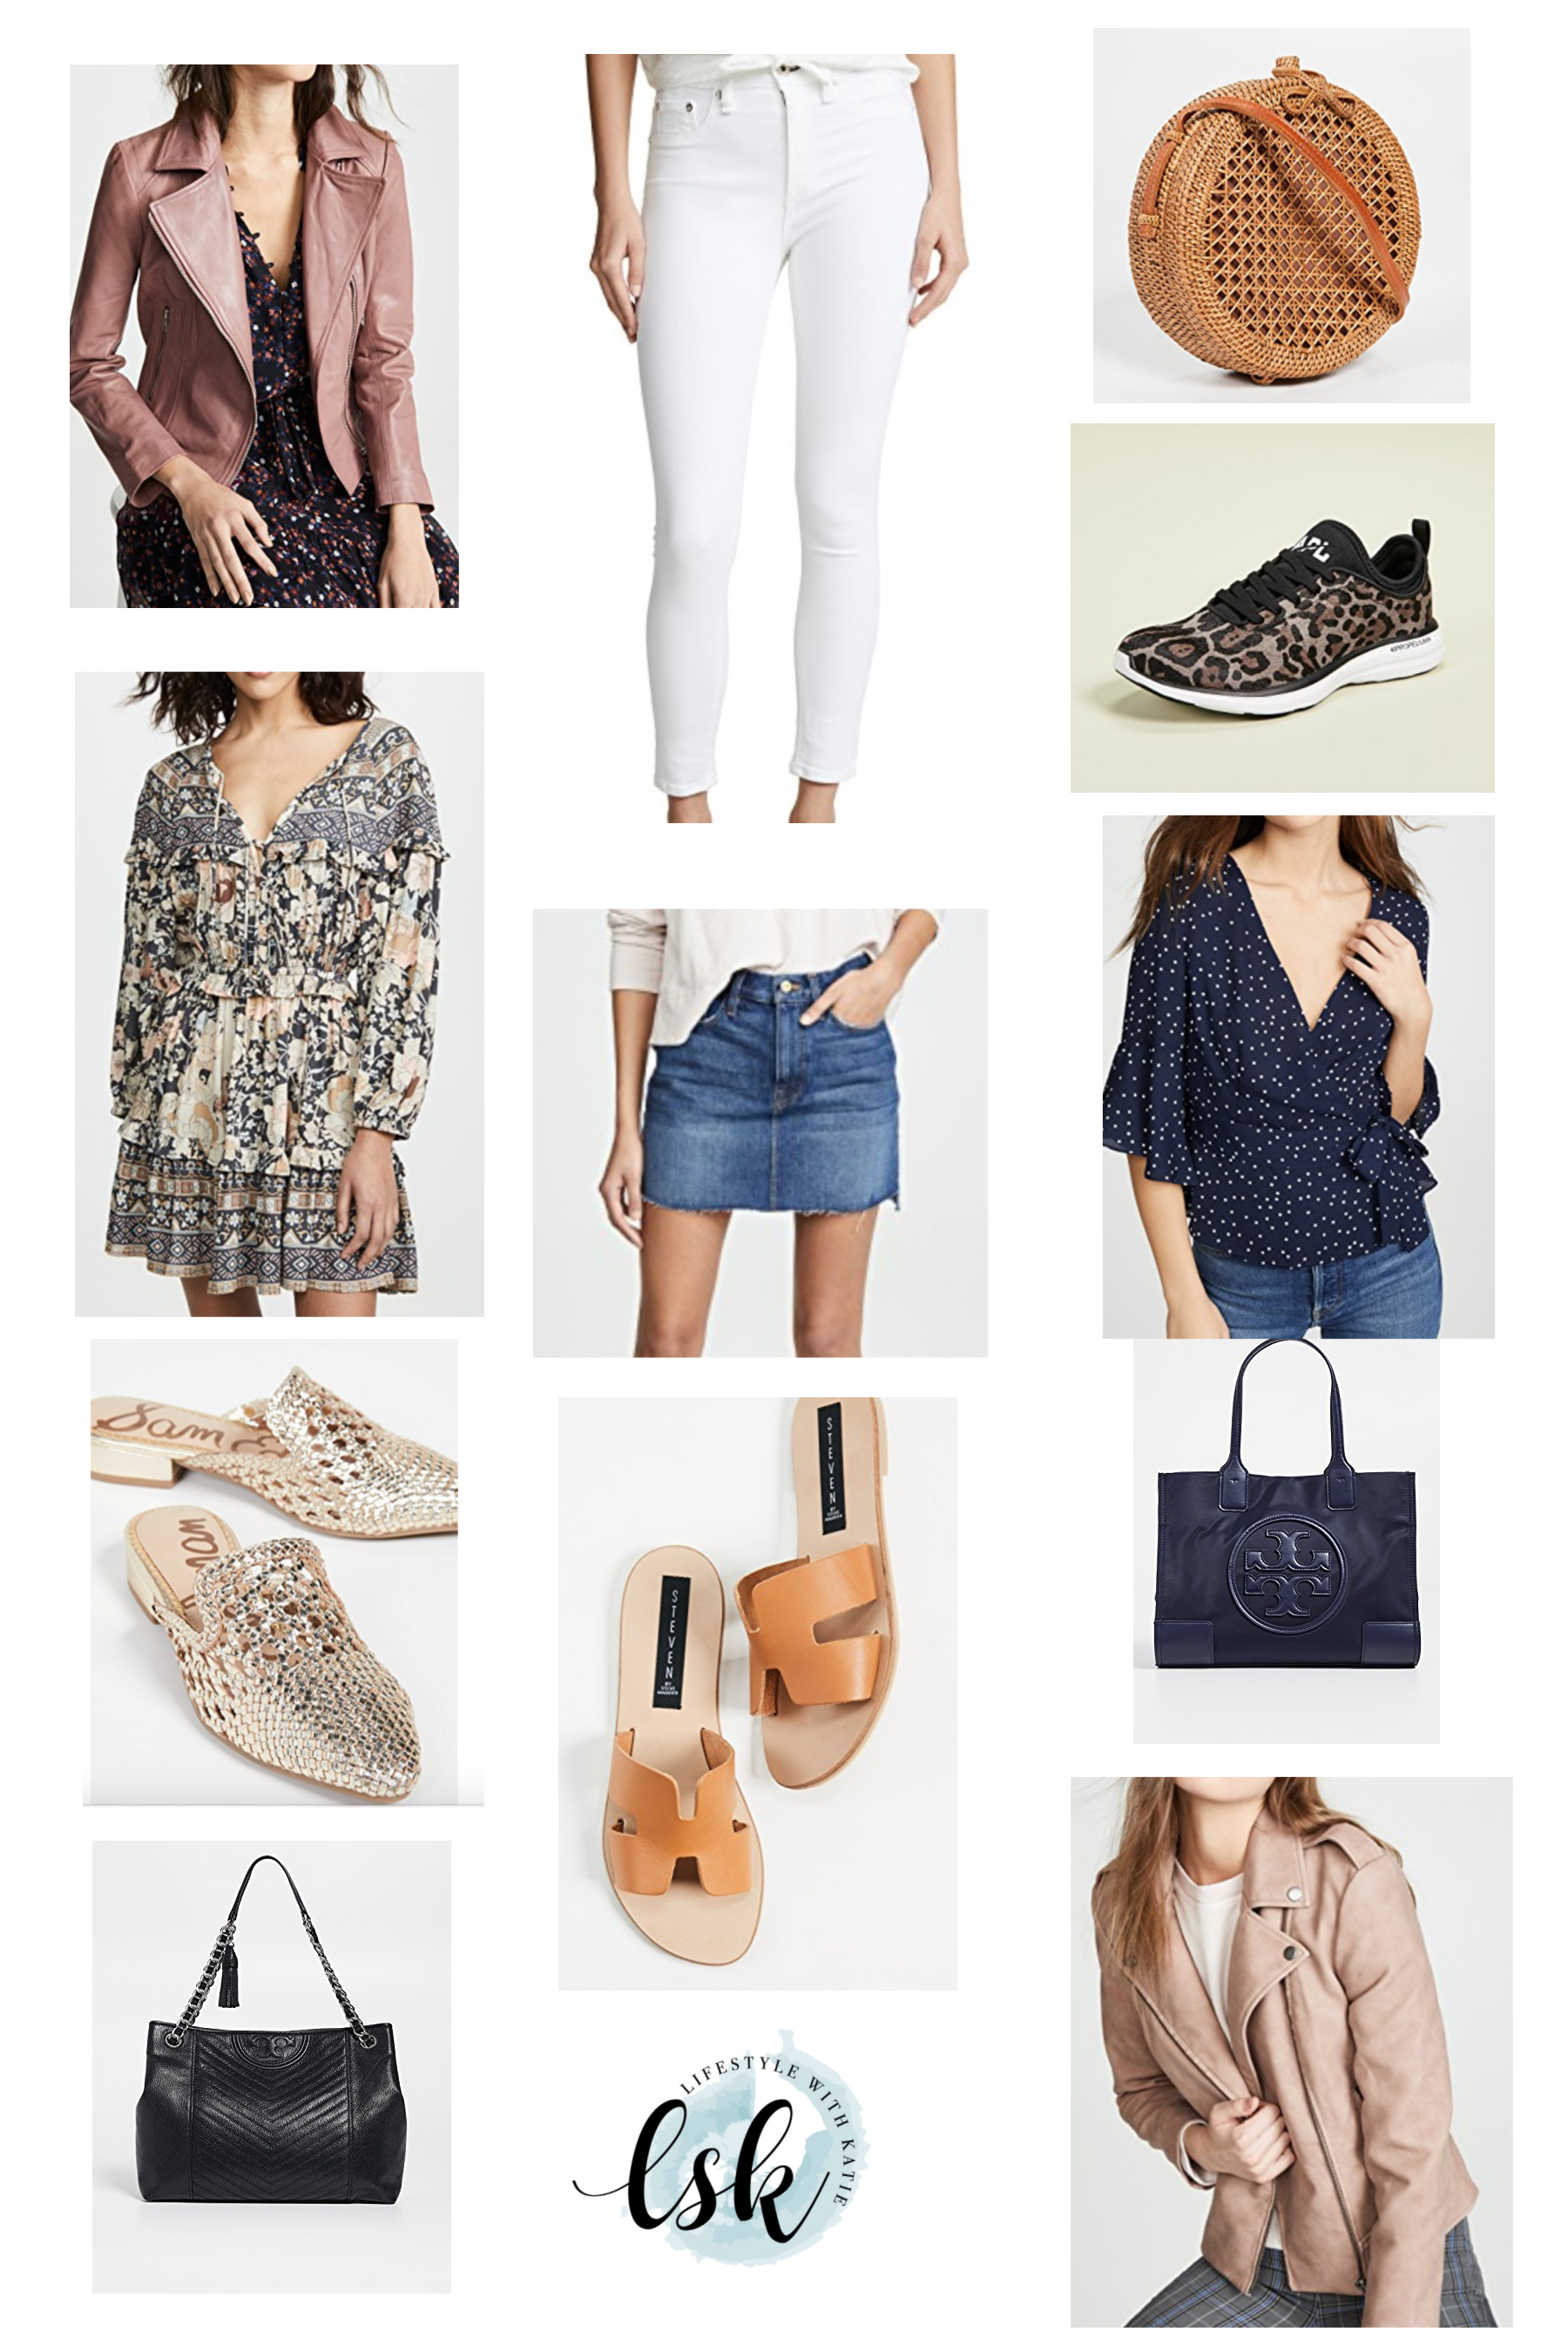 CLICK LINKS BELOW FOR EACH ITEM     Pink Leather Jacket    |    white denim    |    Round wicker bag    |    leopard sneakers    |    floral dress    |    denim skirt    |    polka dot blouse    |    gold mules    |    tan slides        navy tote    |    black handbag    |    pick moto jacket